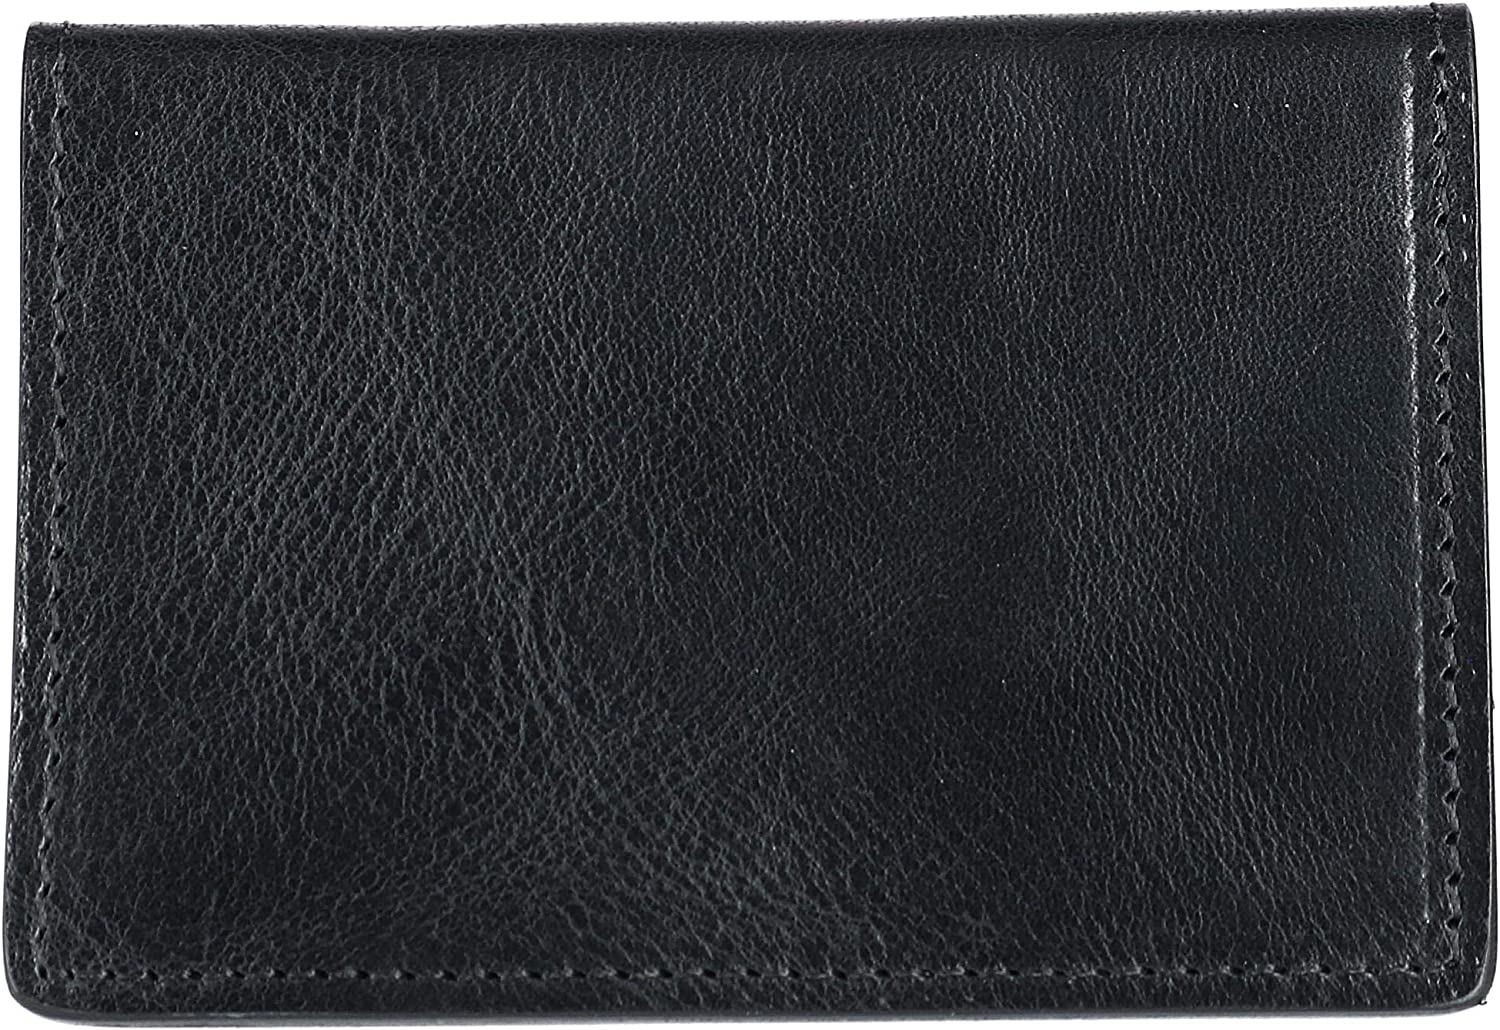 The British Belt Company Italian Leather Card Case Wallet